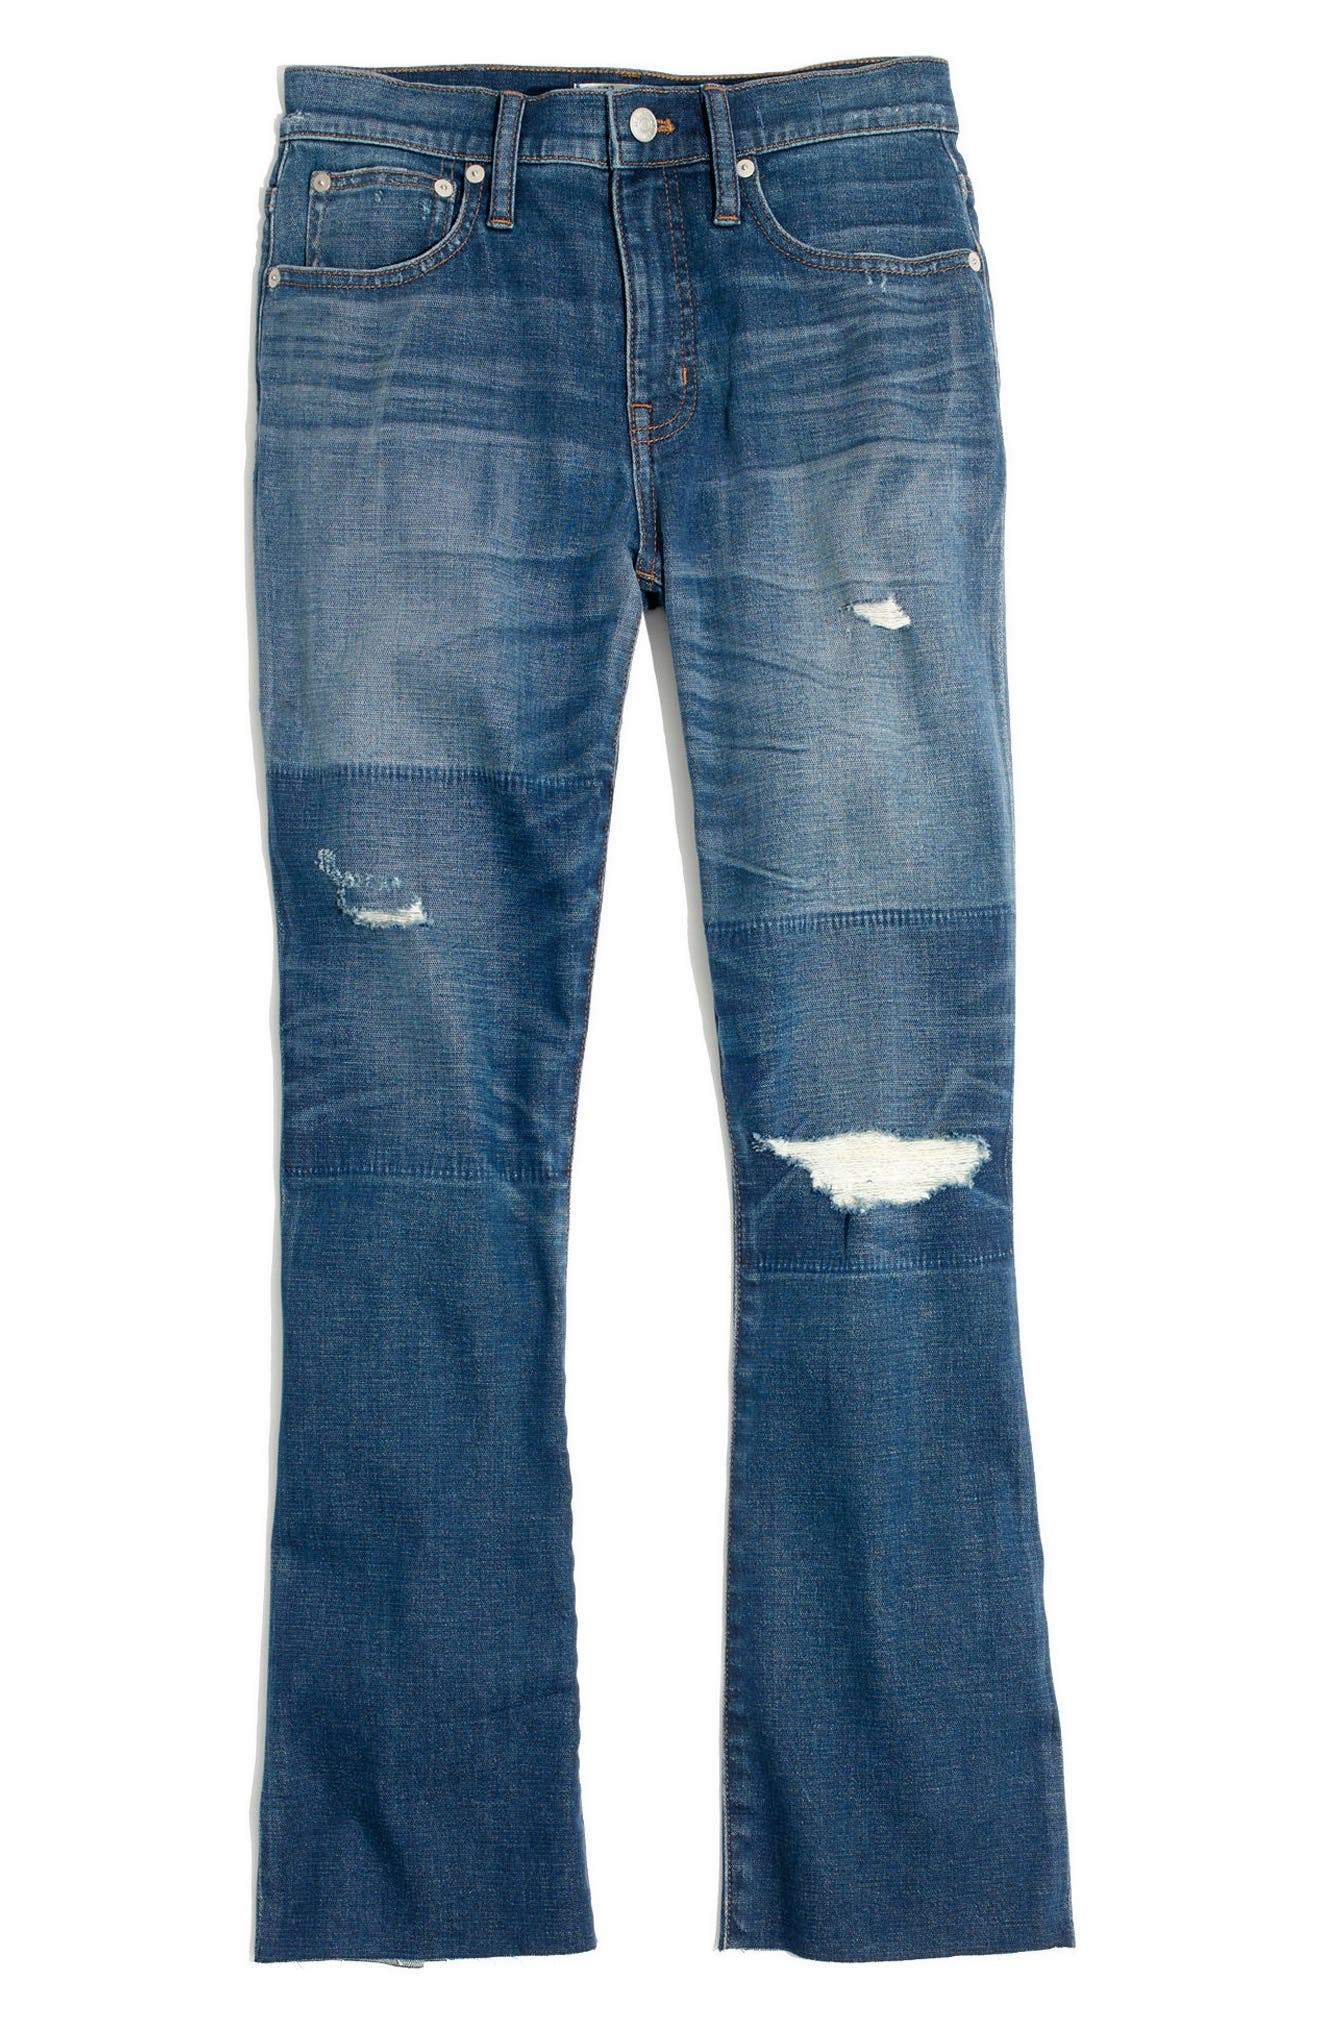 MADEWELL, Cali Ripped Demi Bootleg Crop Jeans, Alternate thumbnail 4, color, 400